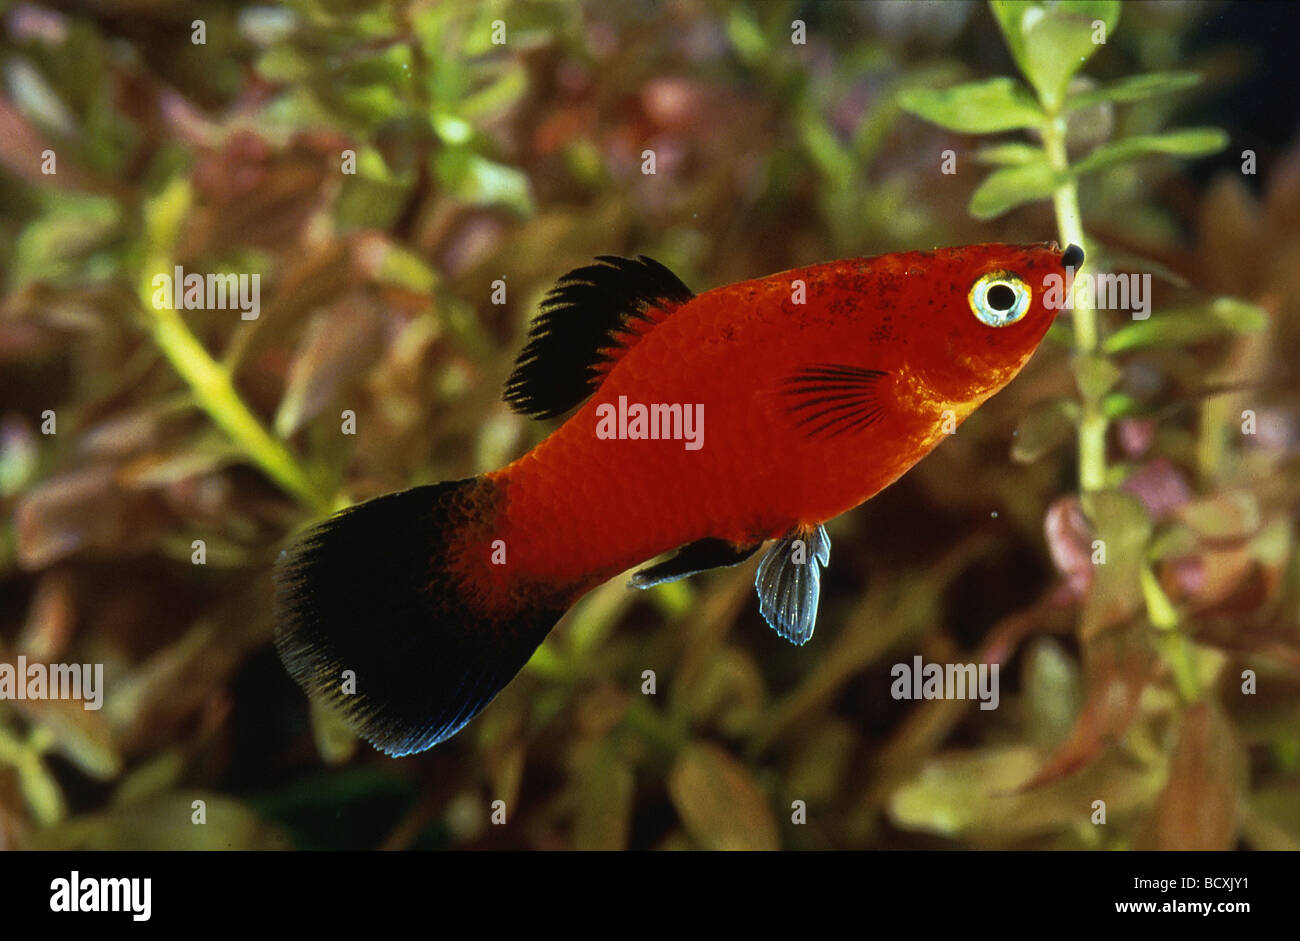 Platy Fish Stock Photos & Platy Fish Stock Images - Page 2 - Alamy